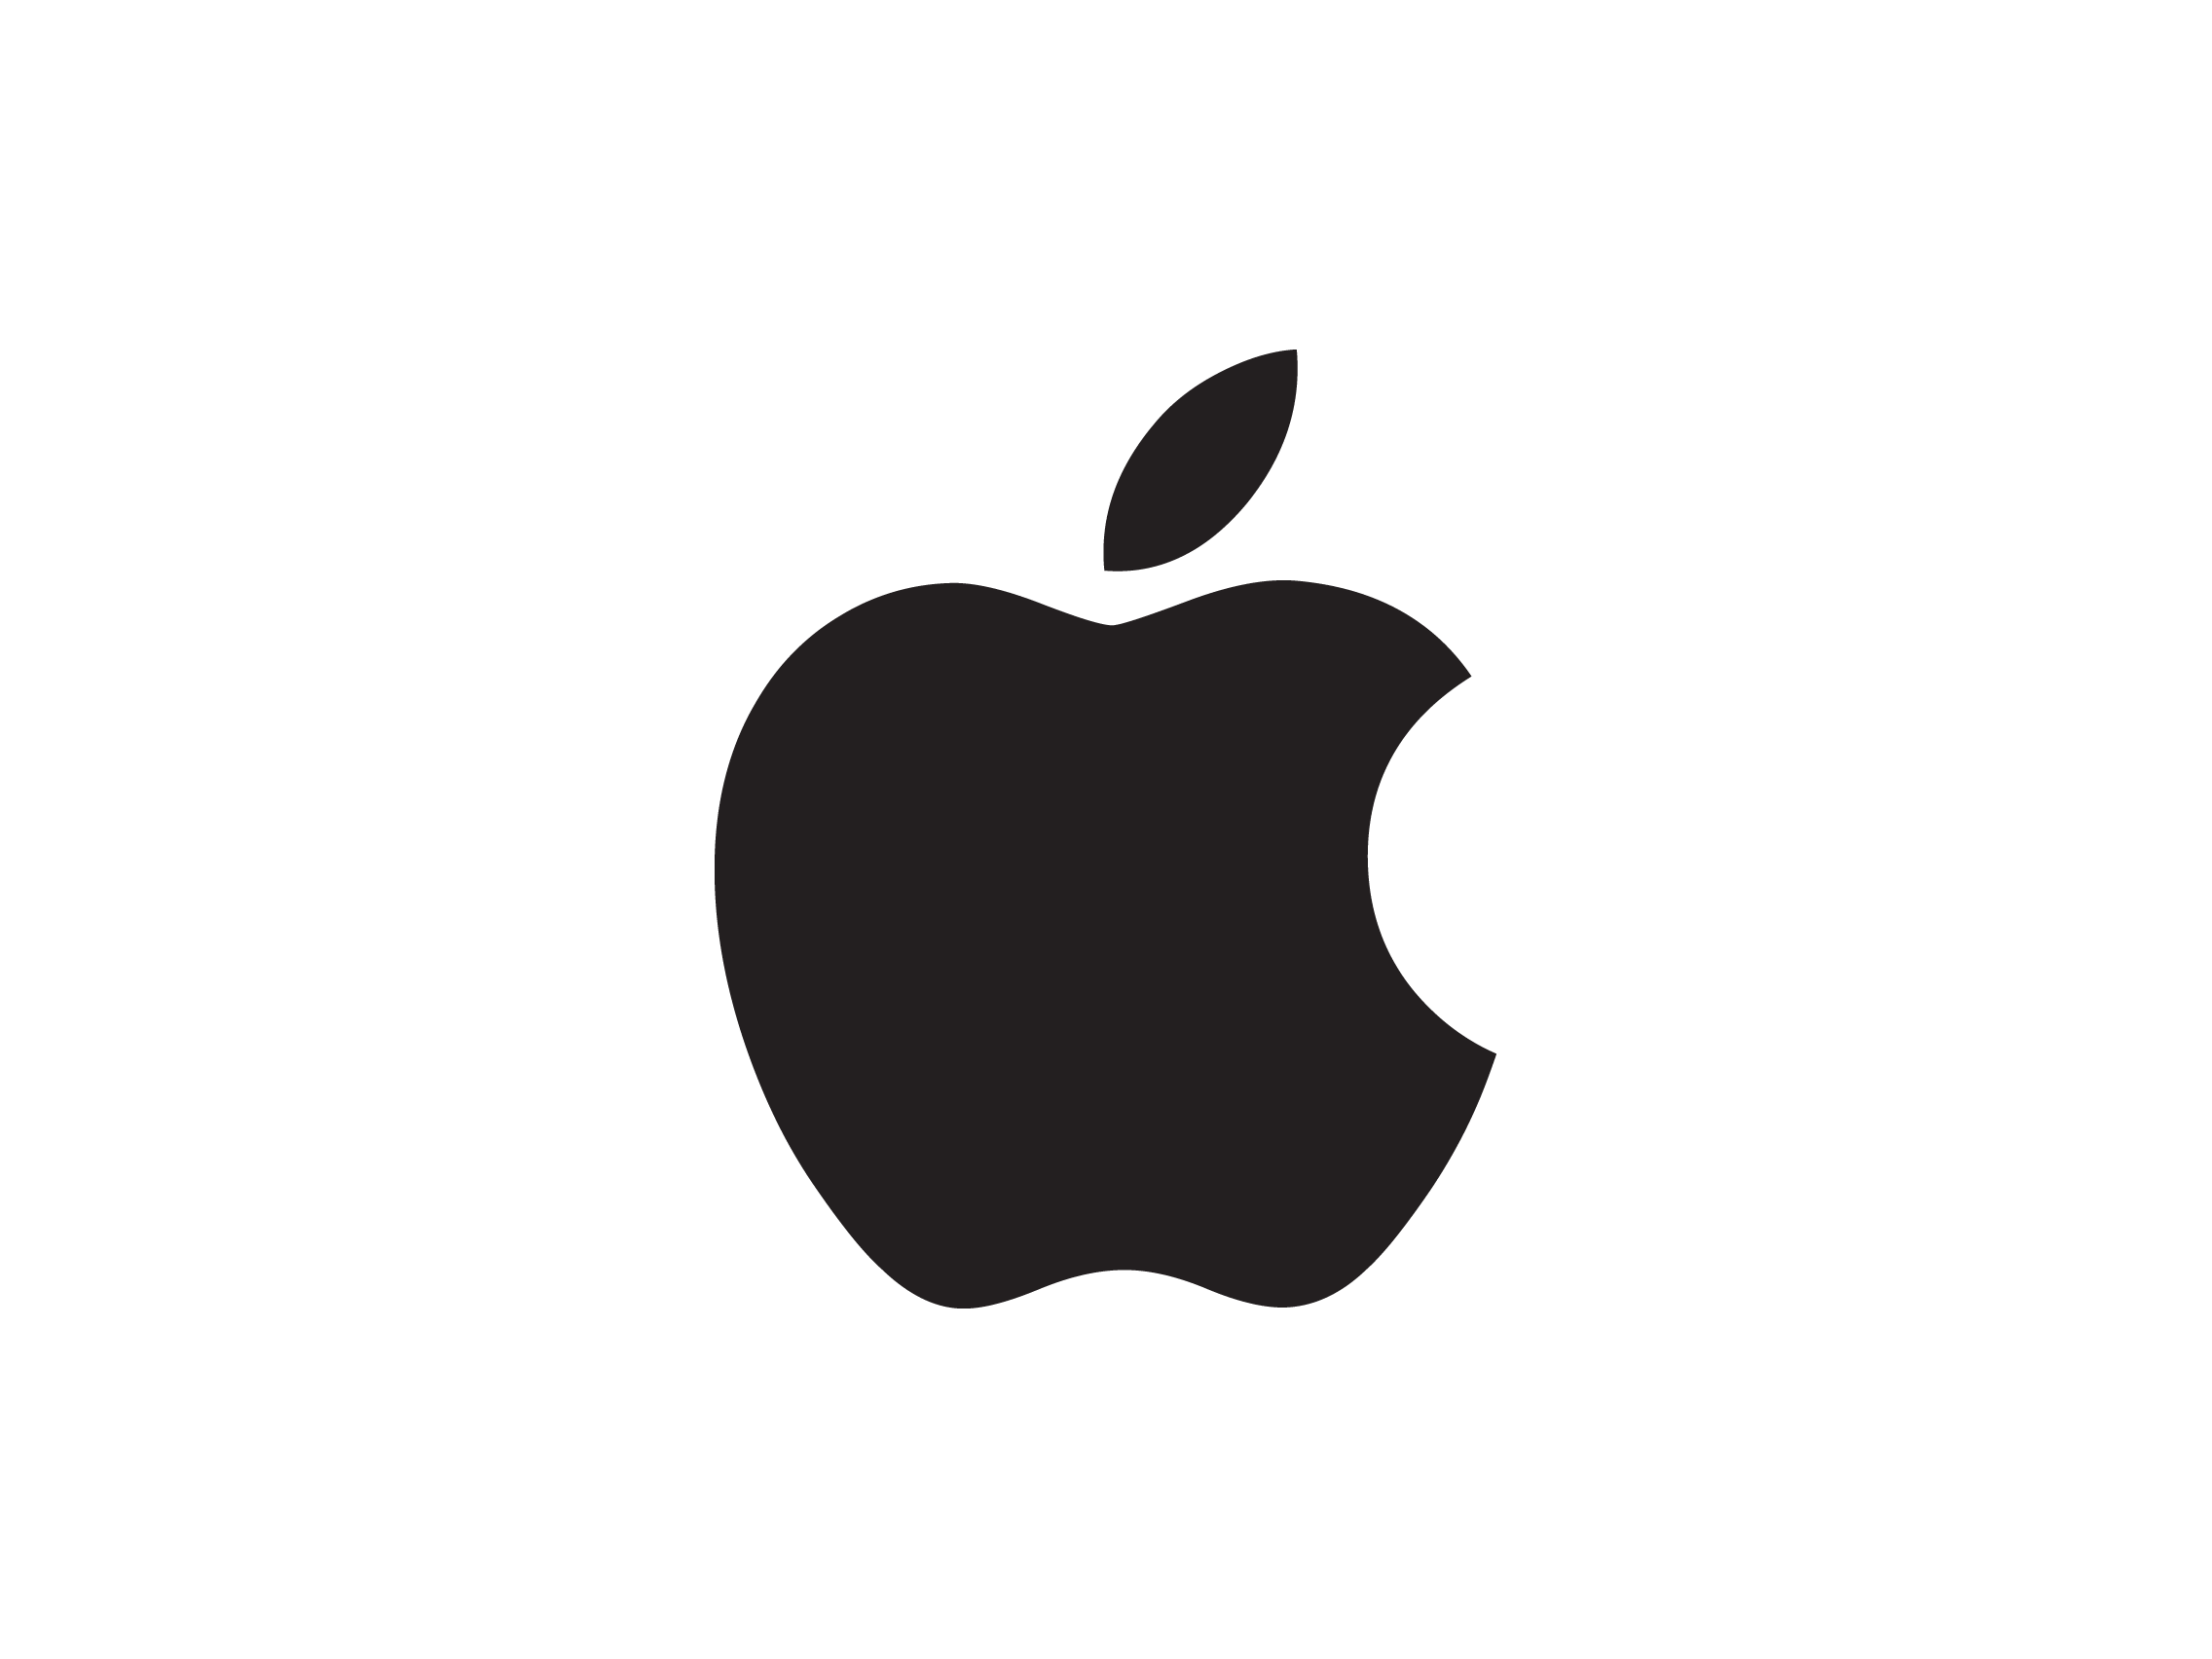 Ipad Apple Technical Support Applecare Plus Iphone PNG Image